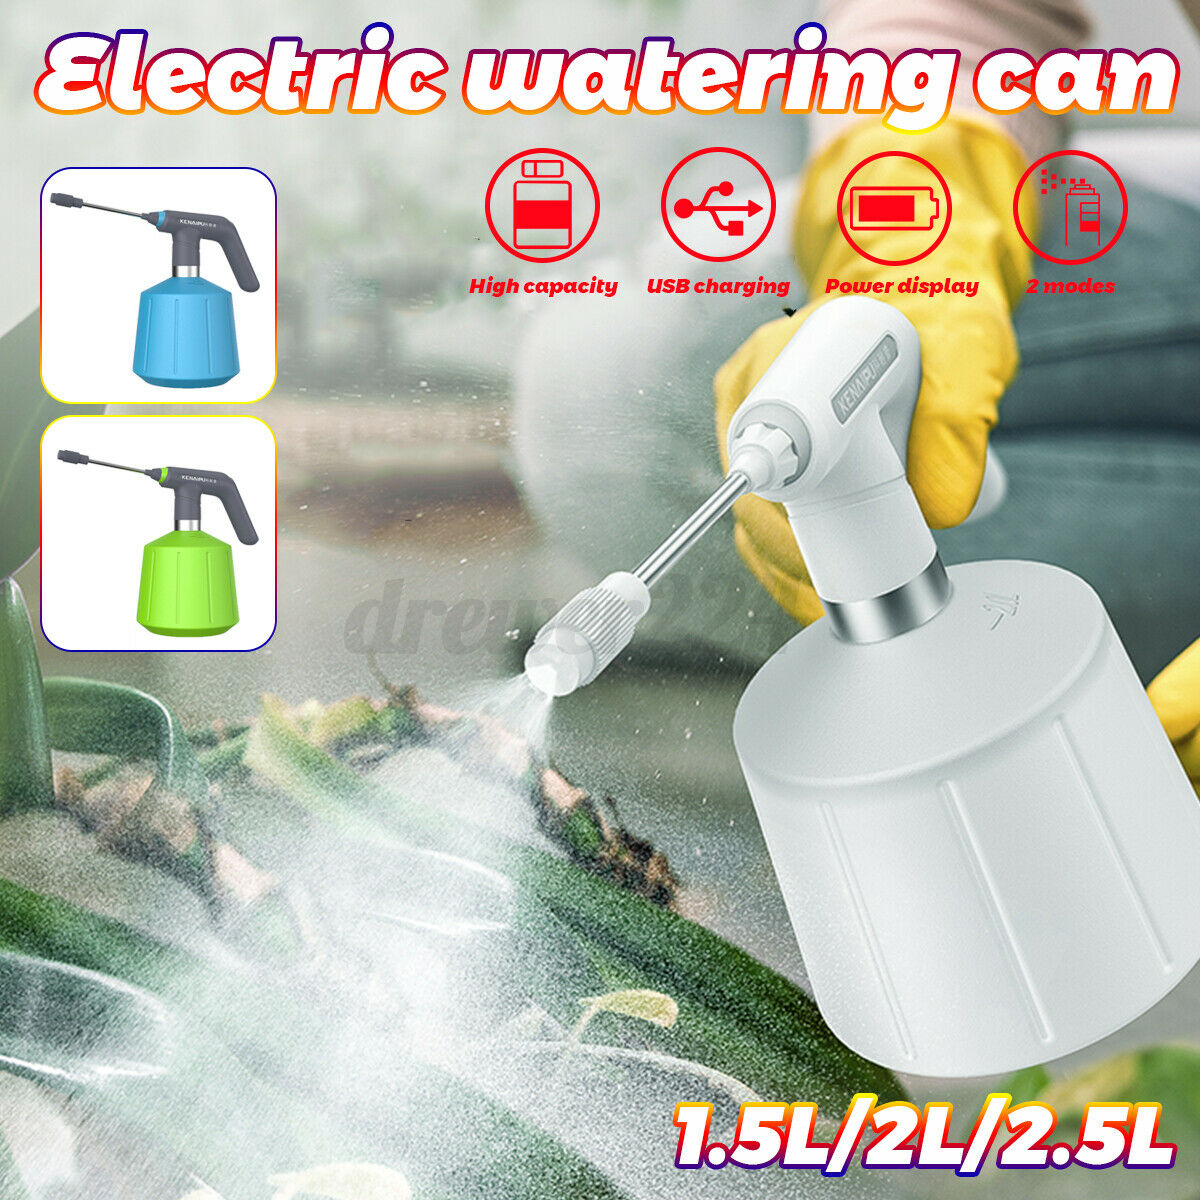 1.5L/2L/2.5L Electric Disinfection Watering Can Spray Bottle Rechargeable USB